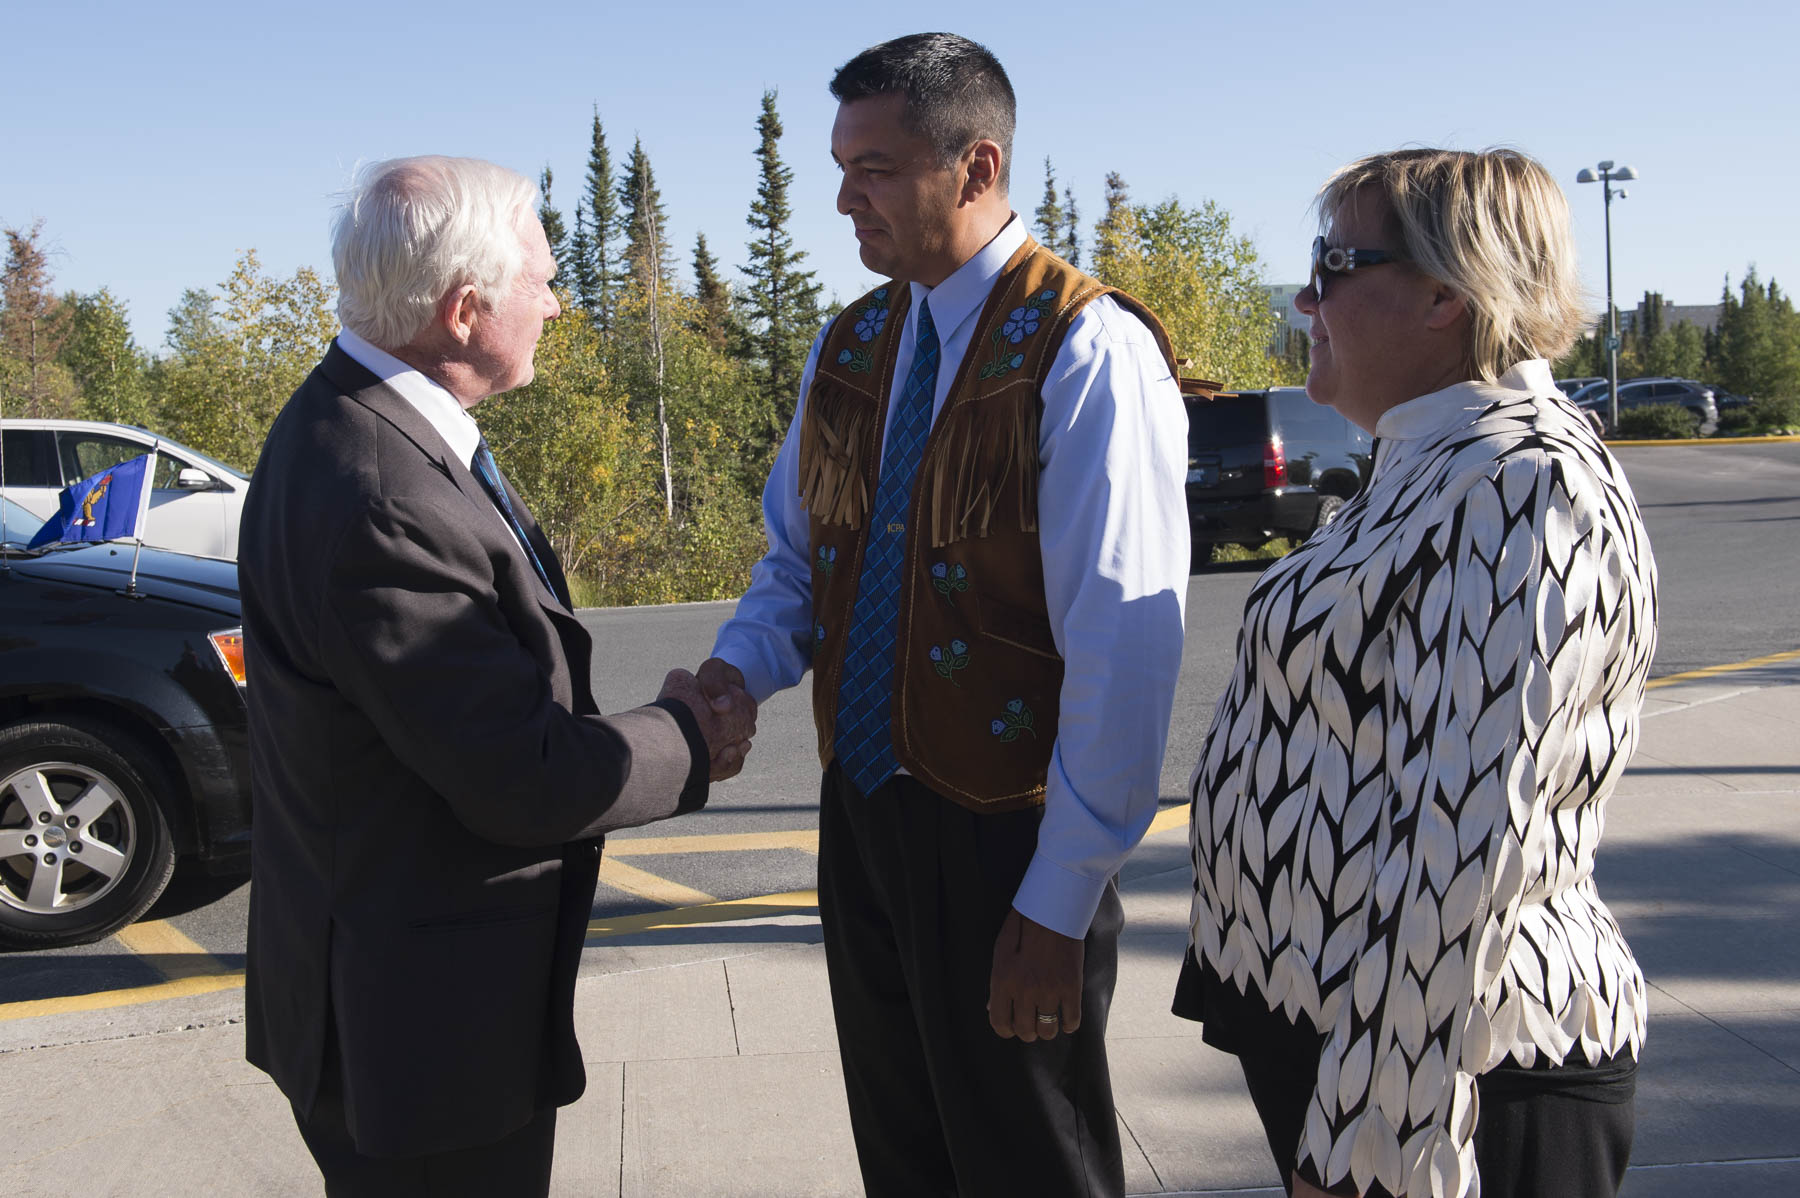 Later on, Their Excellencies went to the Legislative Assembly for a community reception. Upon arrival they were greeted by Jackson Lafferty, Speaker of the Legislative Assembly and his spouse, Diane.